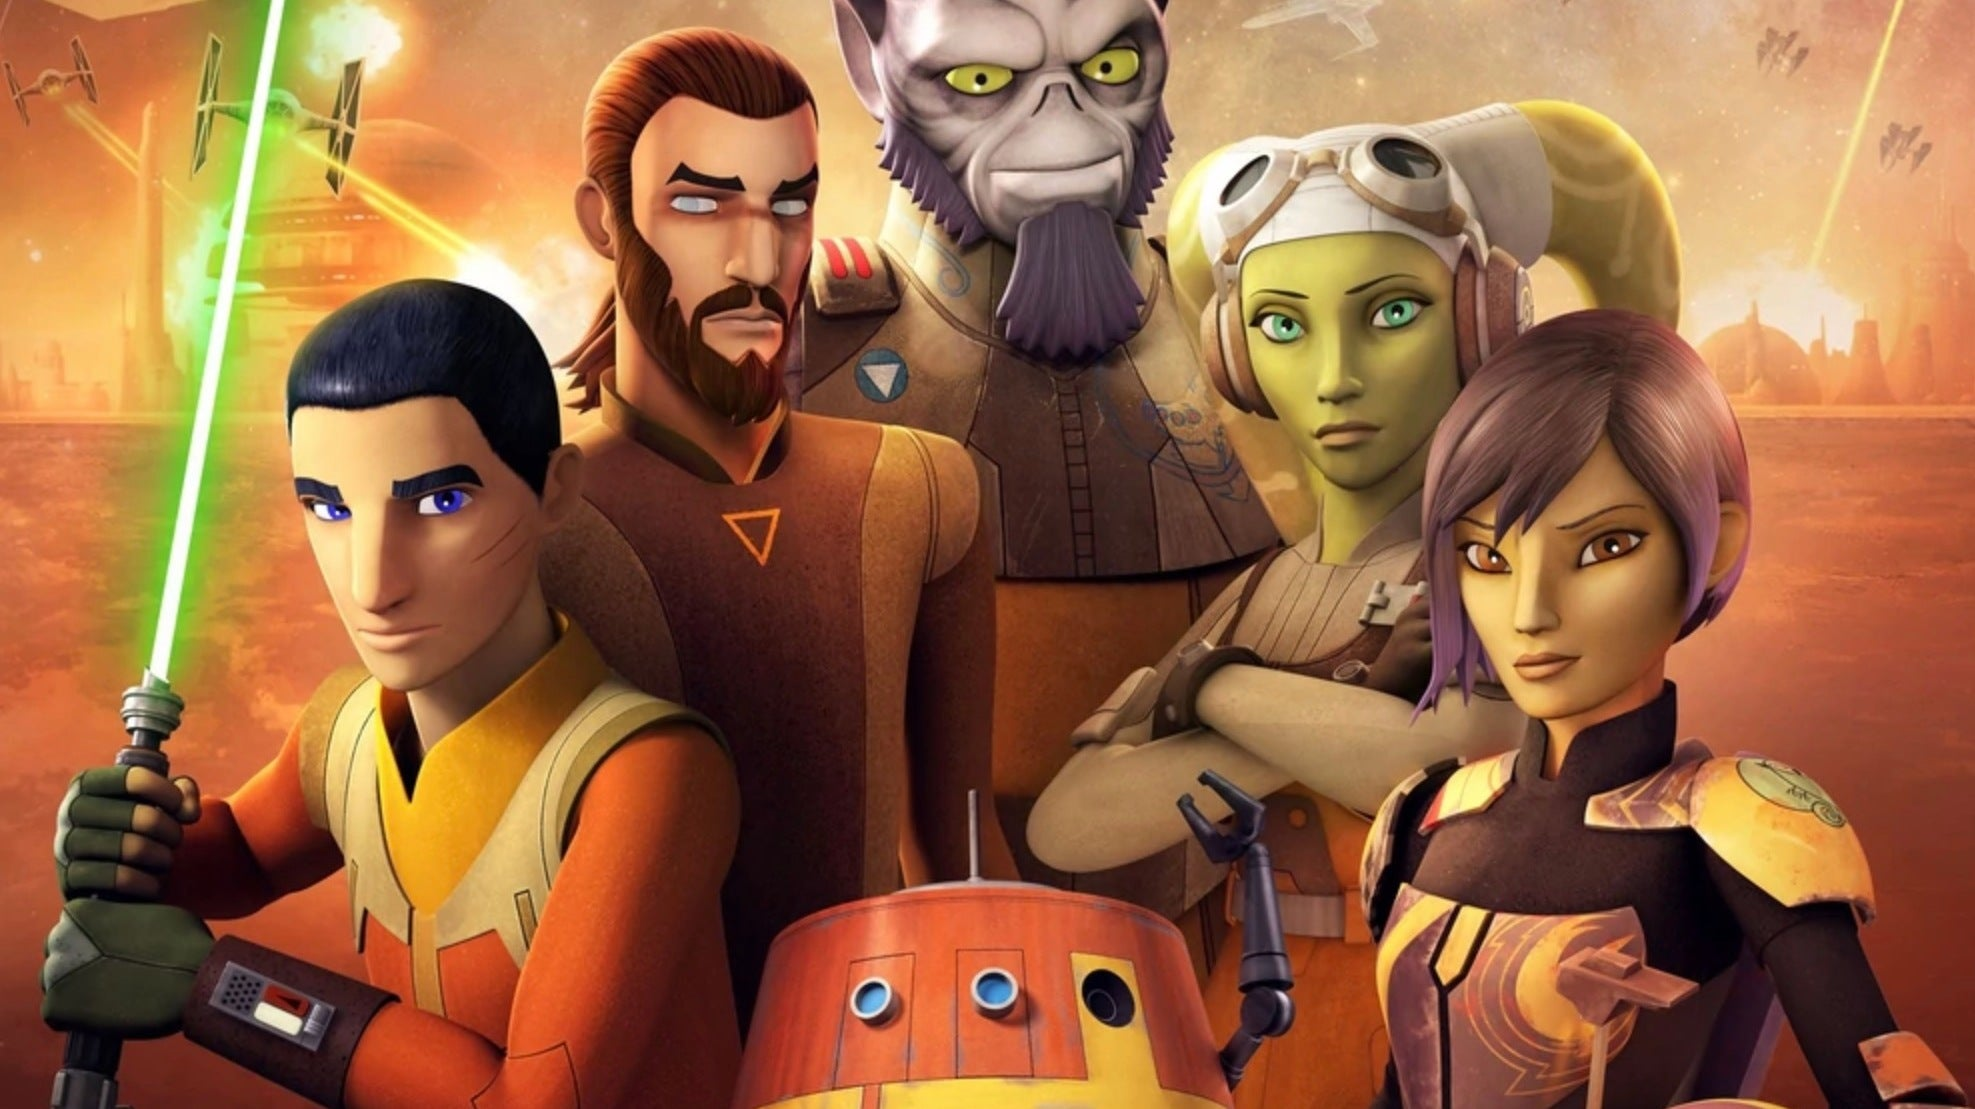 The Star Wars Rebels Season 4 Blu-ray Is A Fitting Tribute To The Series And Franchise